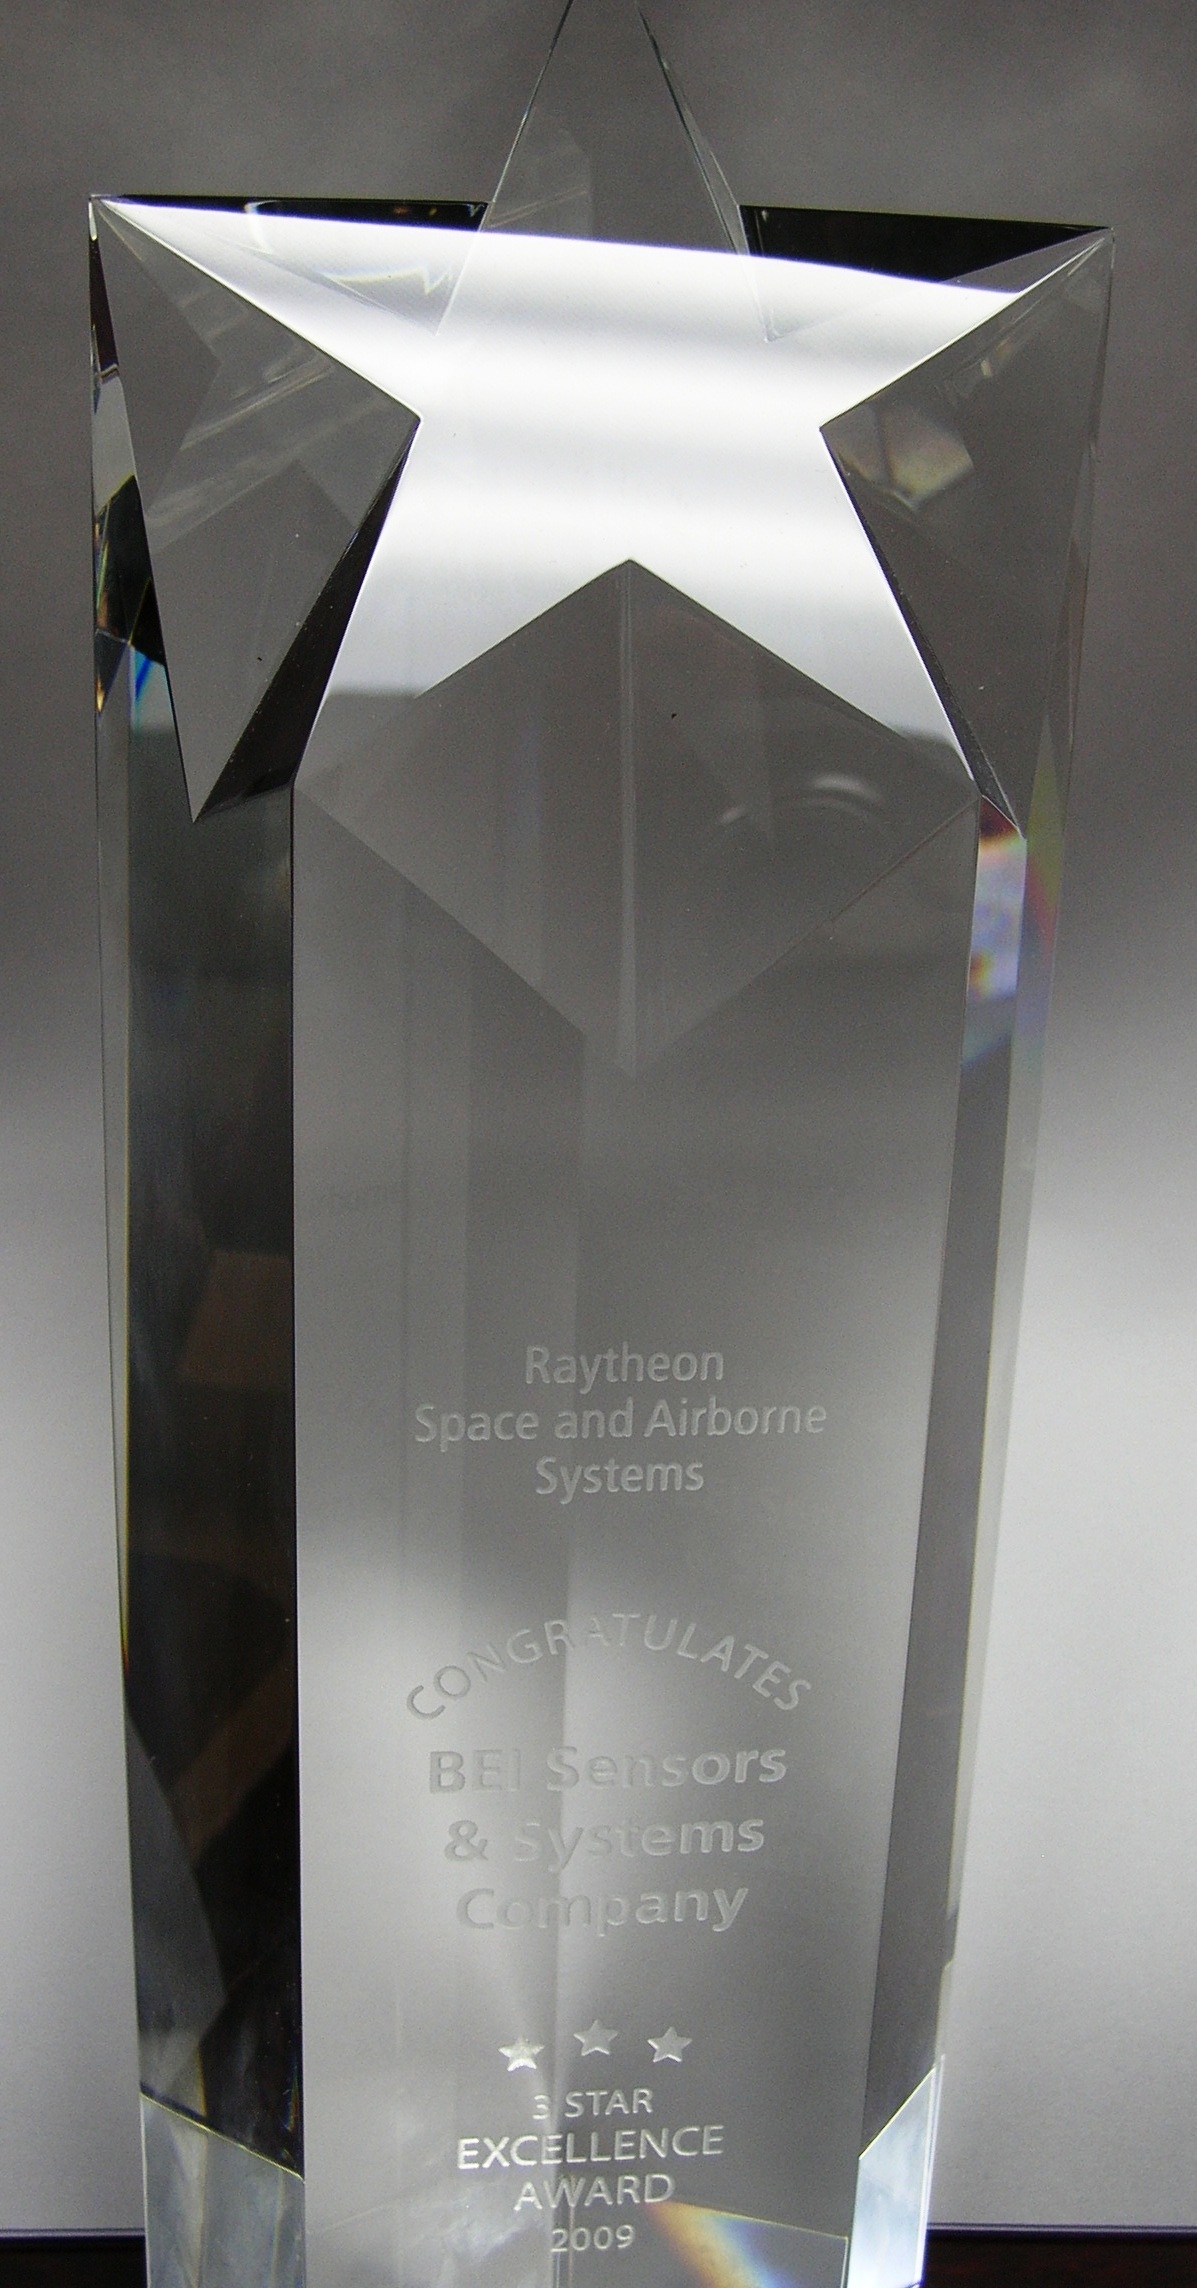 RECOGNIZED FOR EXCELLENCE BY RAYTHEON SPACE AND AIRBORNE SYSTEMS